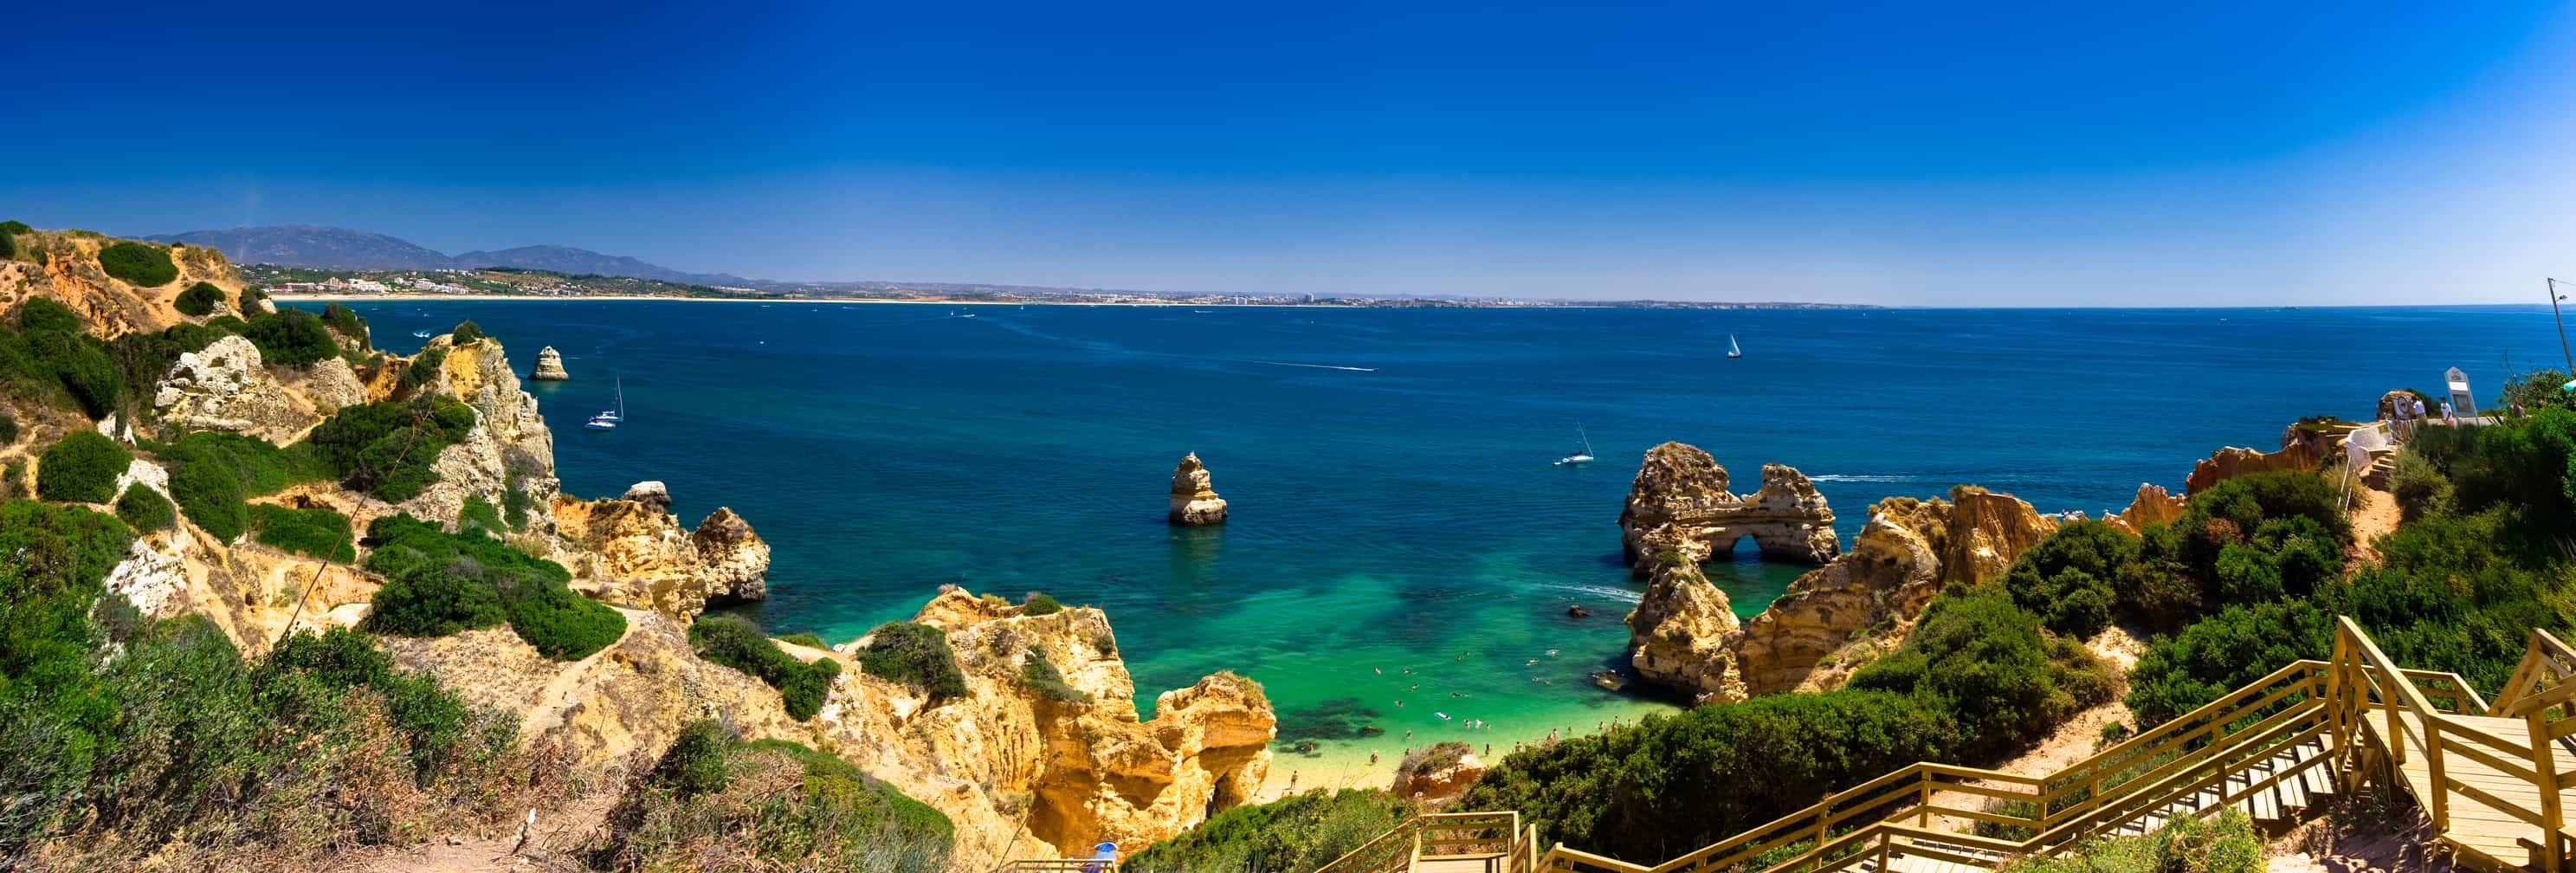 Algarve, a central part of Portugal